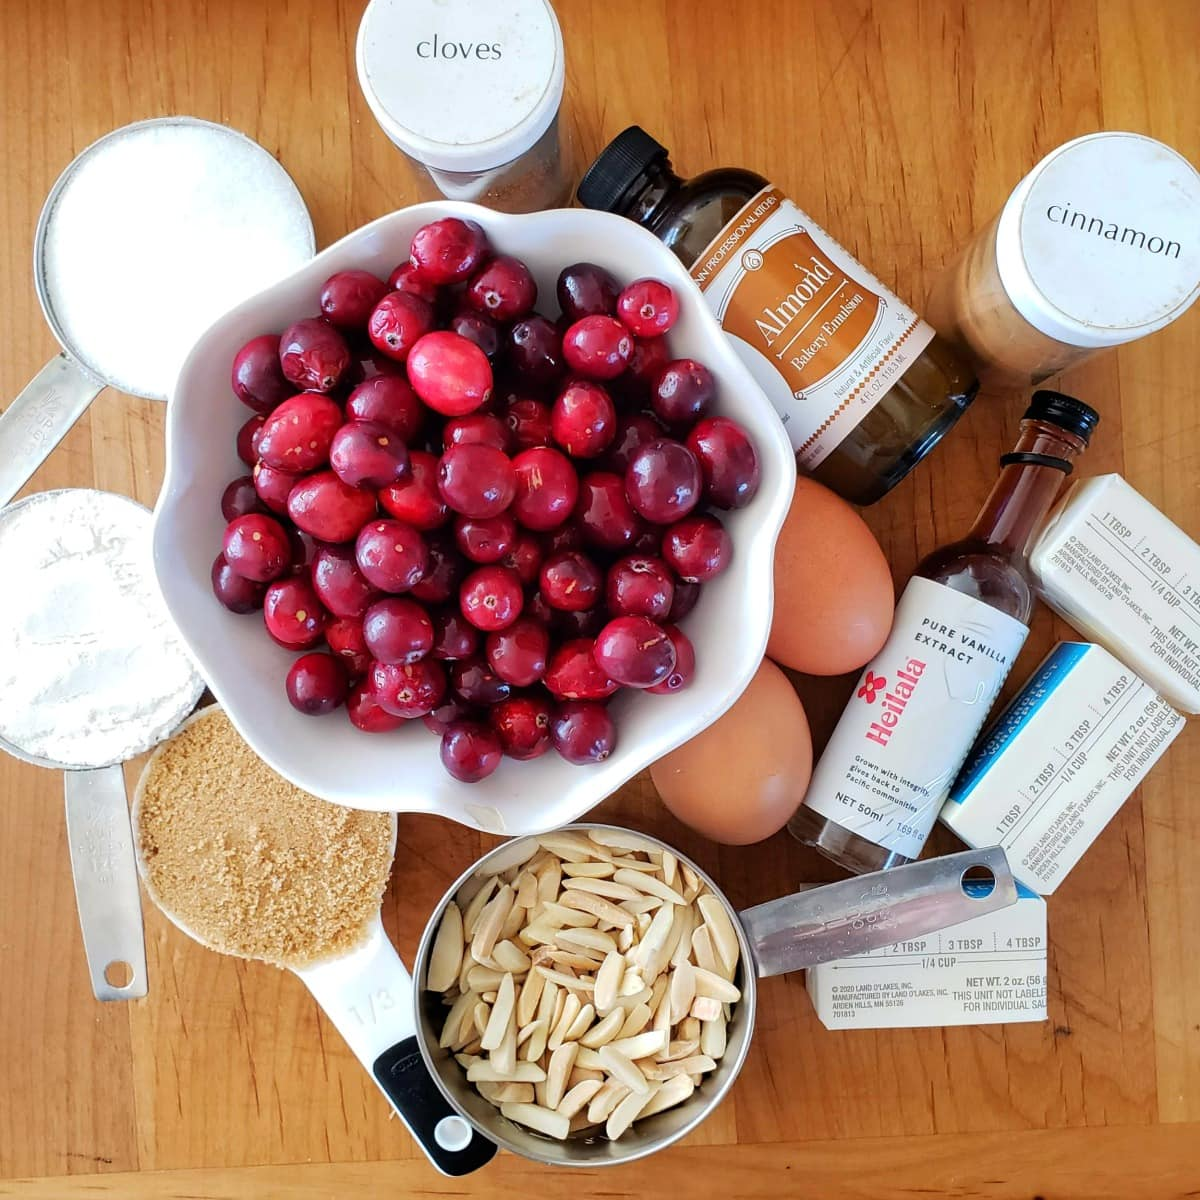 Ingredients for Cranberry Breakfast Cake